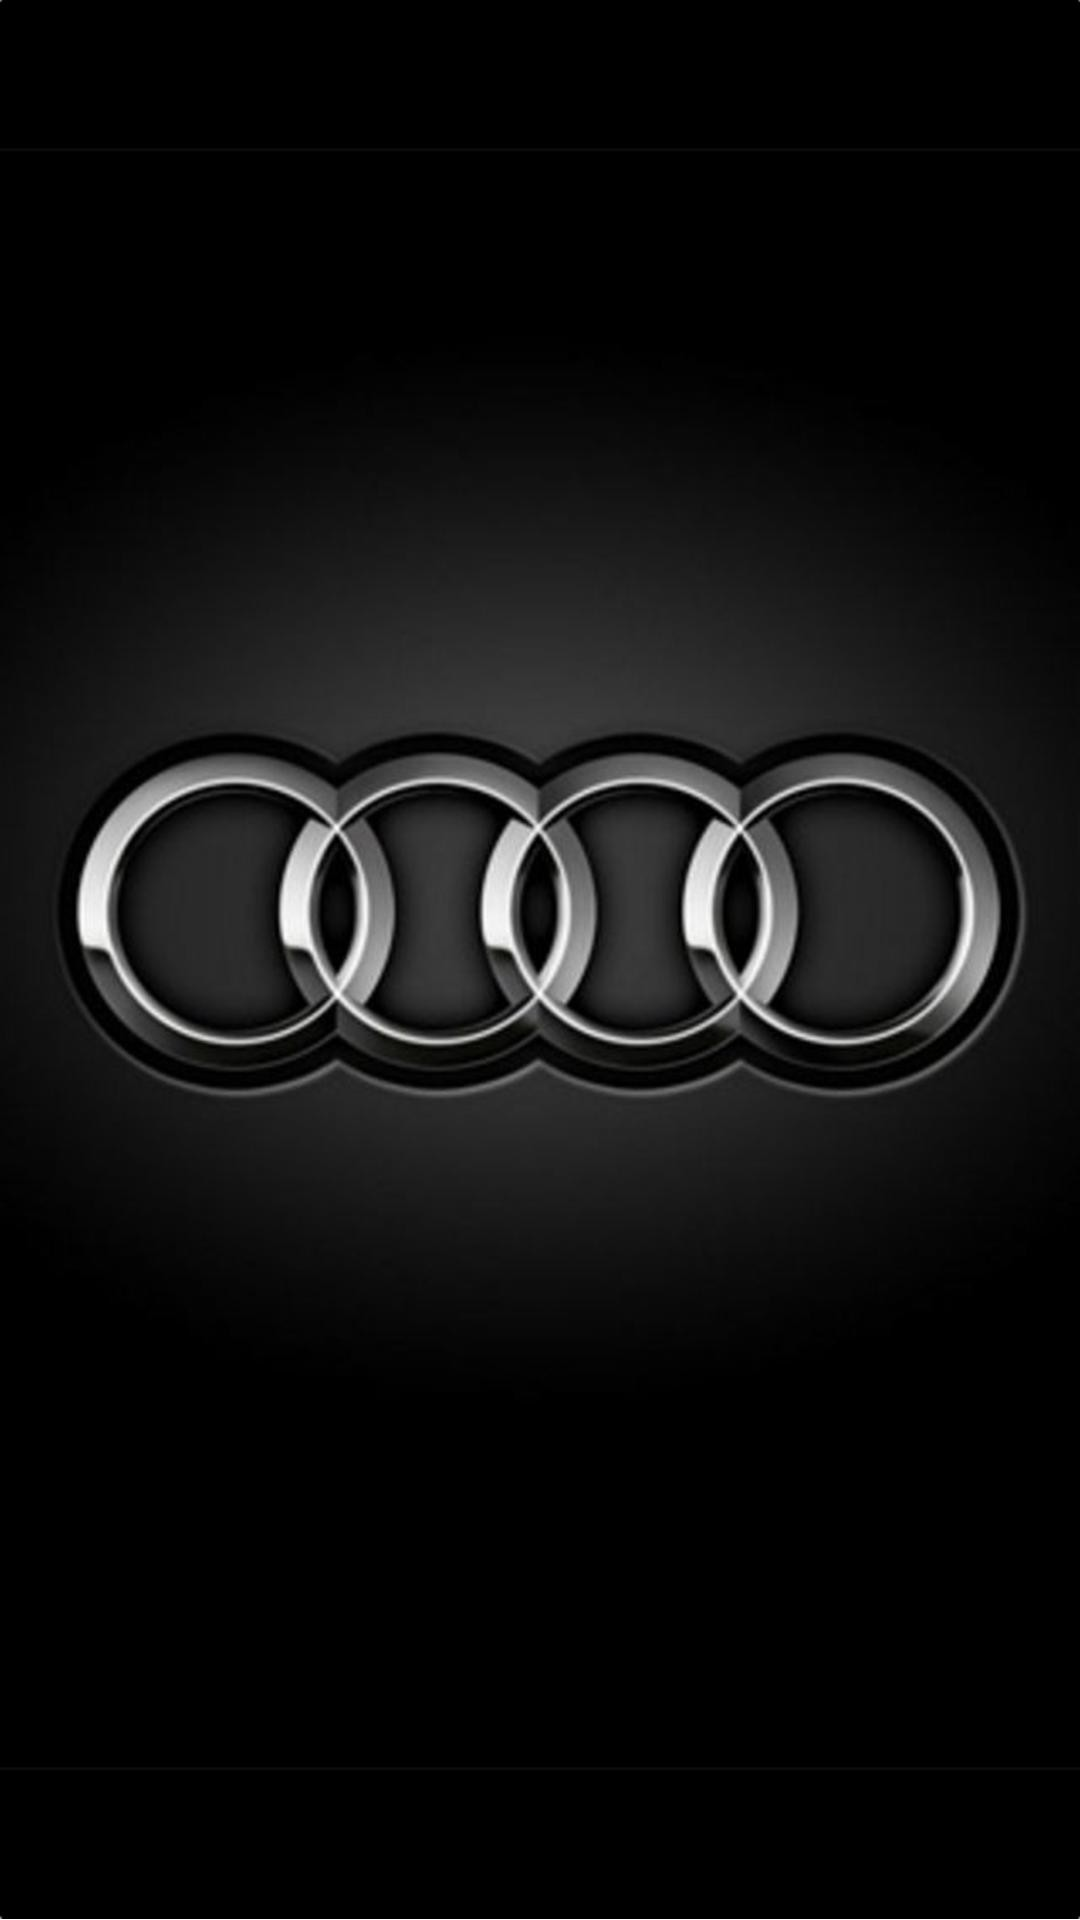 Car Logos Wallpapers 63 Images